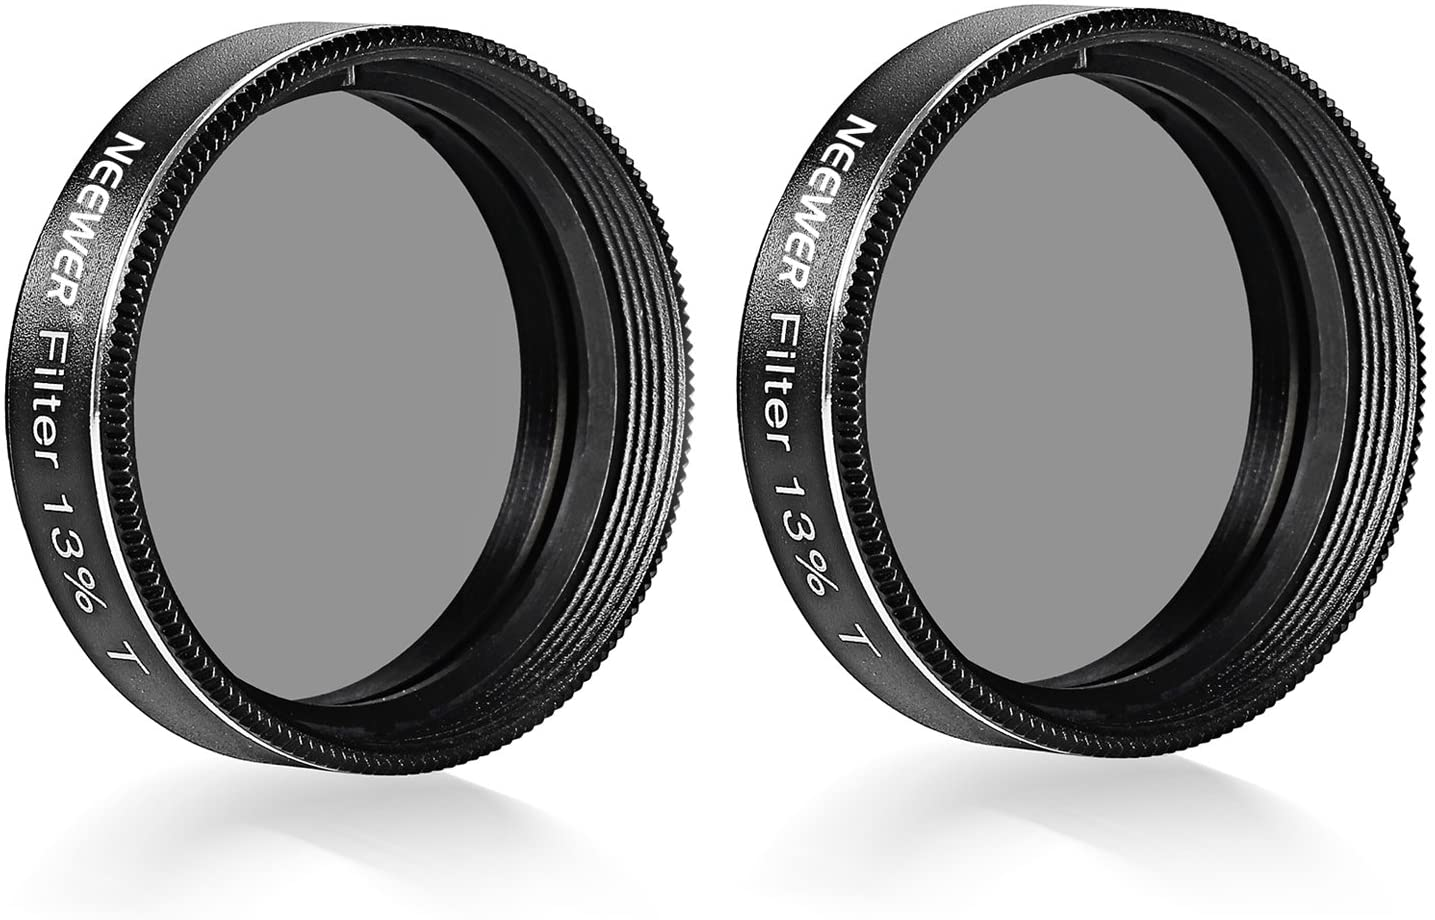 Neewer 2-Pack 1.25 inch Neutral-Density 13 Percent Transmission Telescope Eyepiece Moon Filters